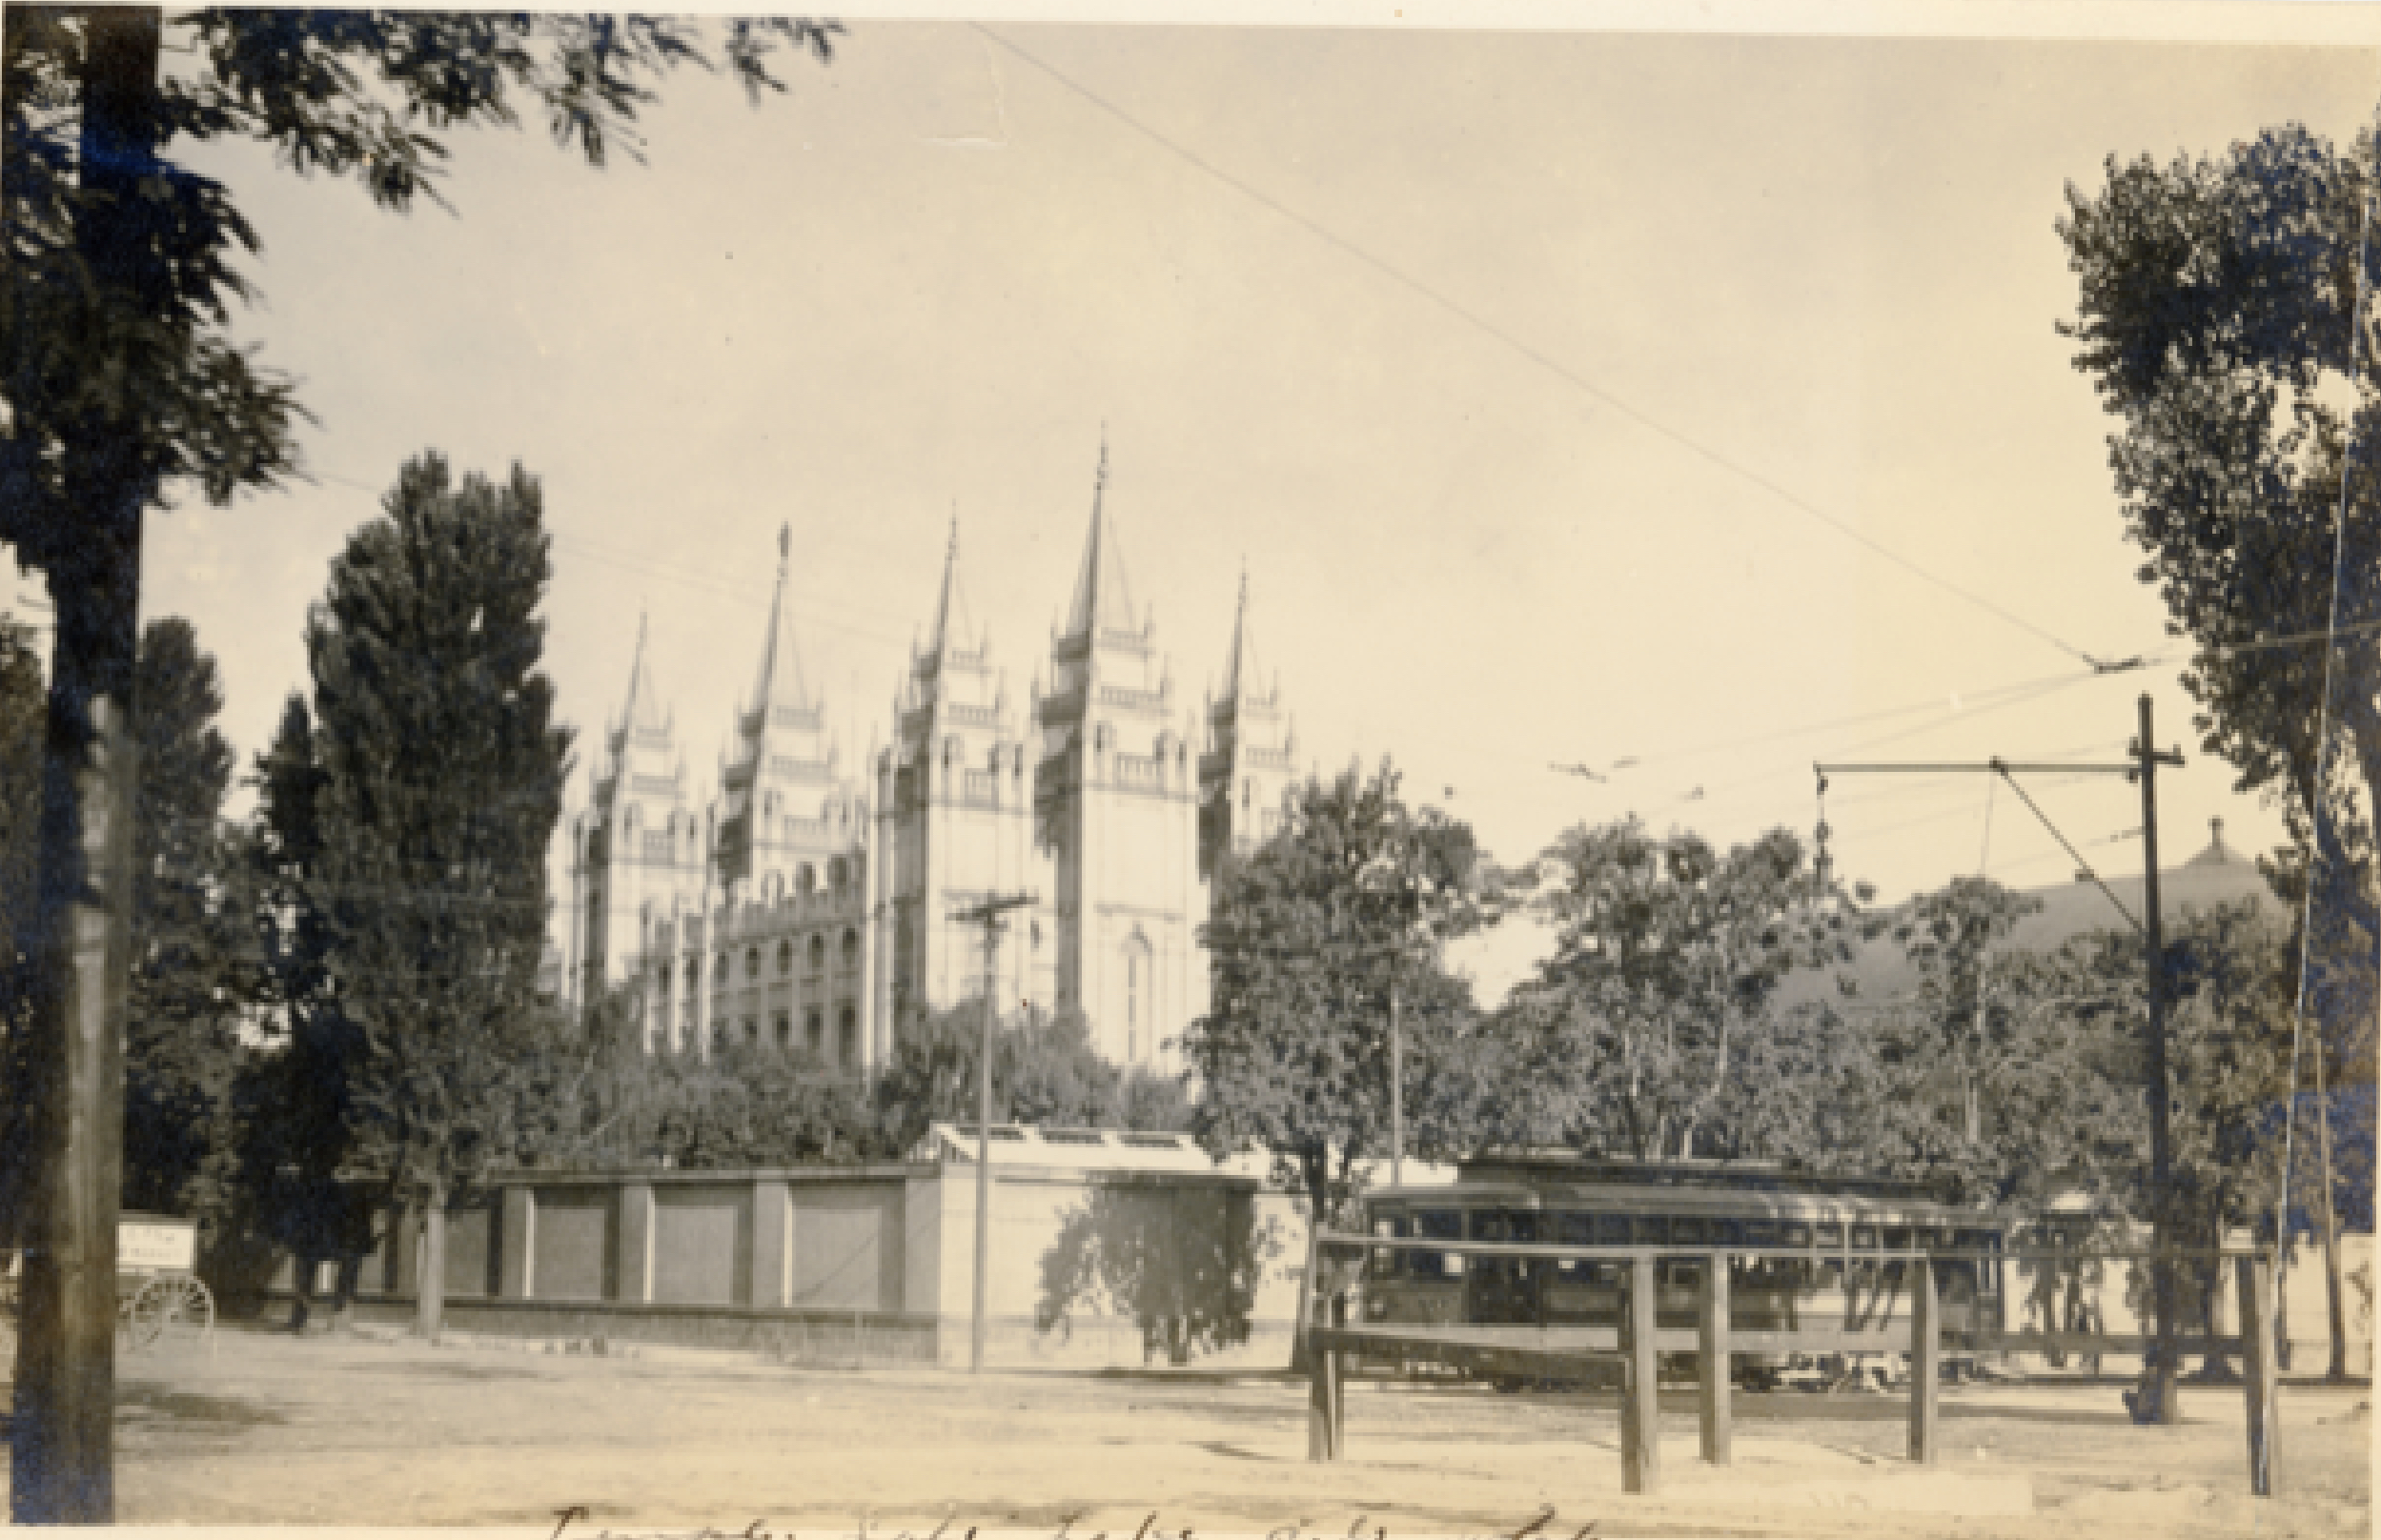 A view of the Salt Lake Temple in 1919.